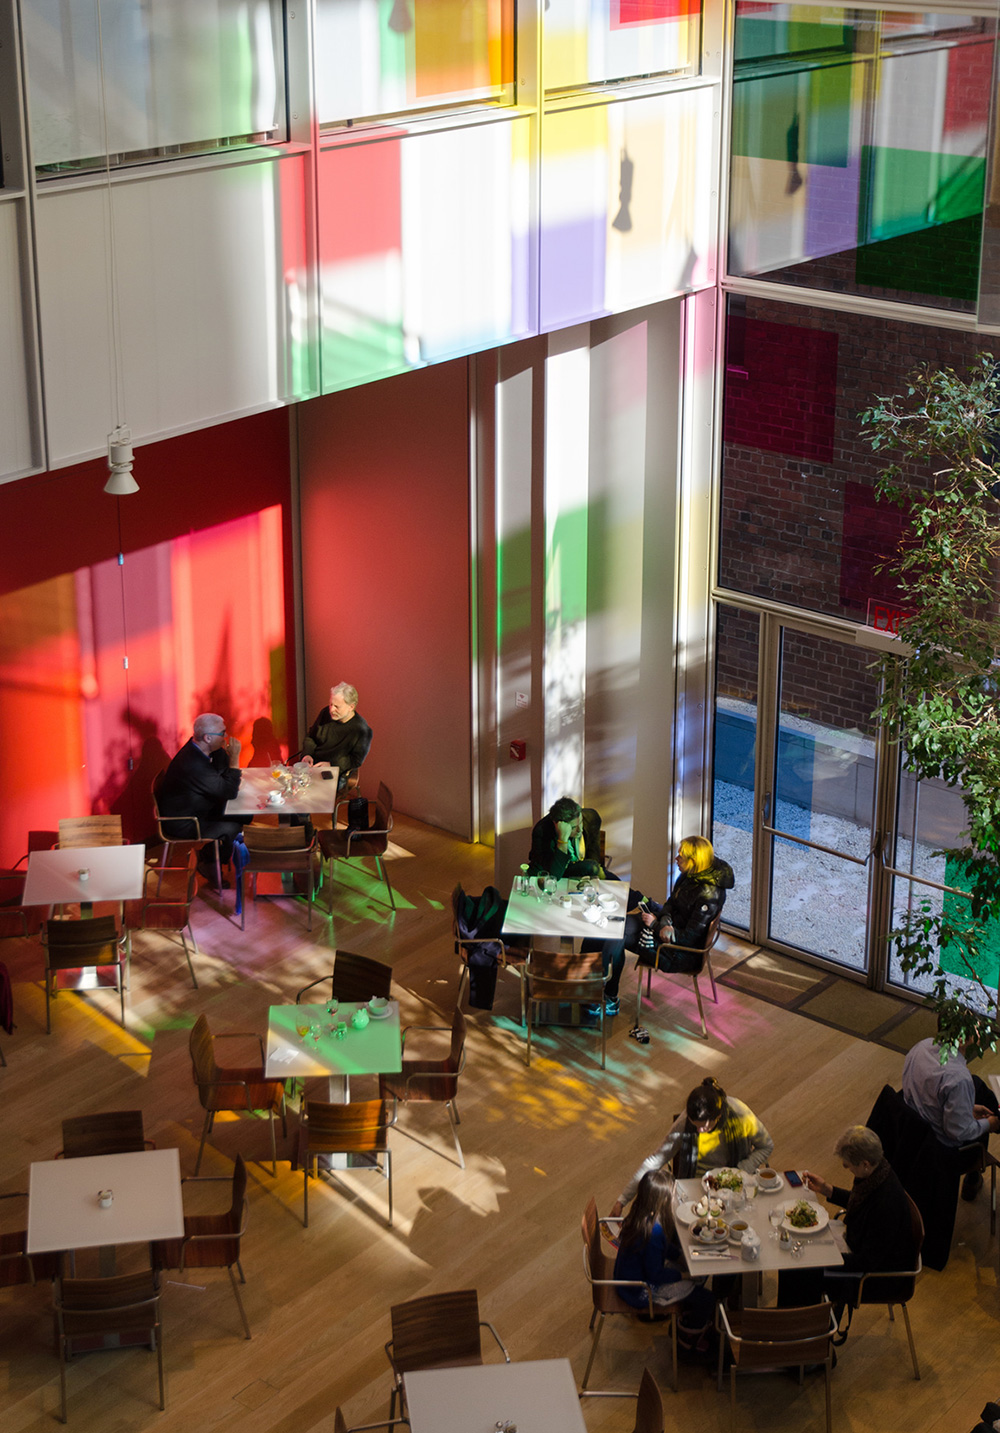 A Certain Slant of Light, the Spencer Finch installation at the Morgan Library and Museum